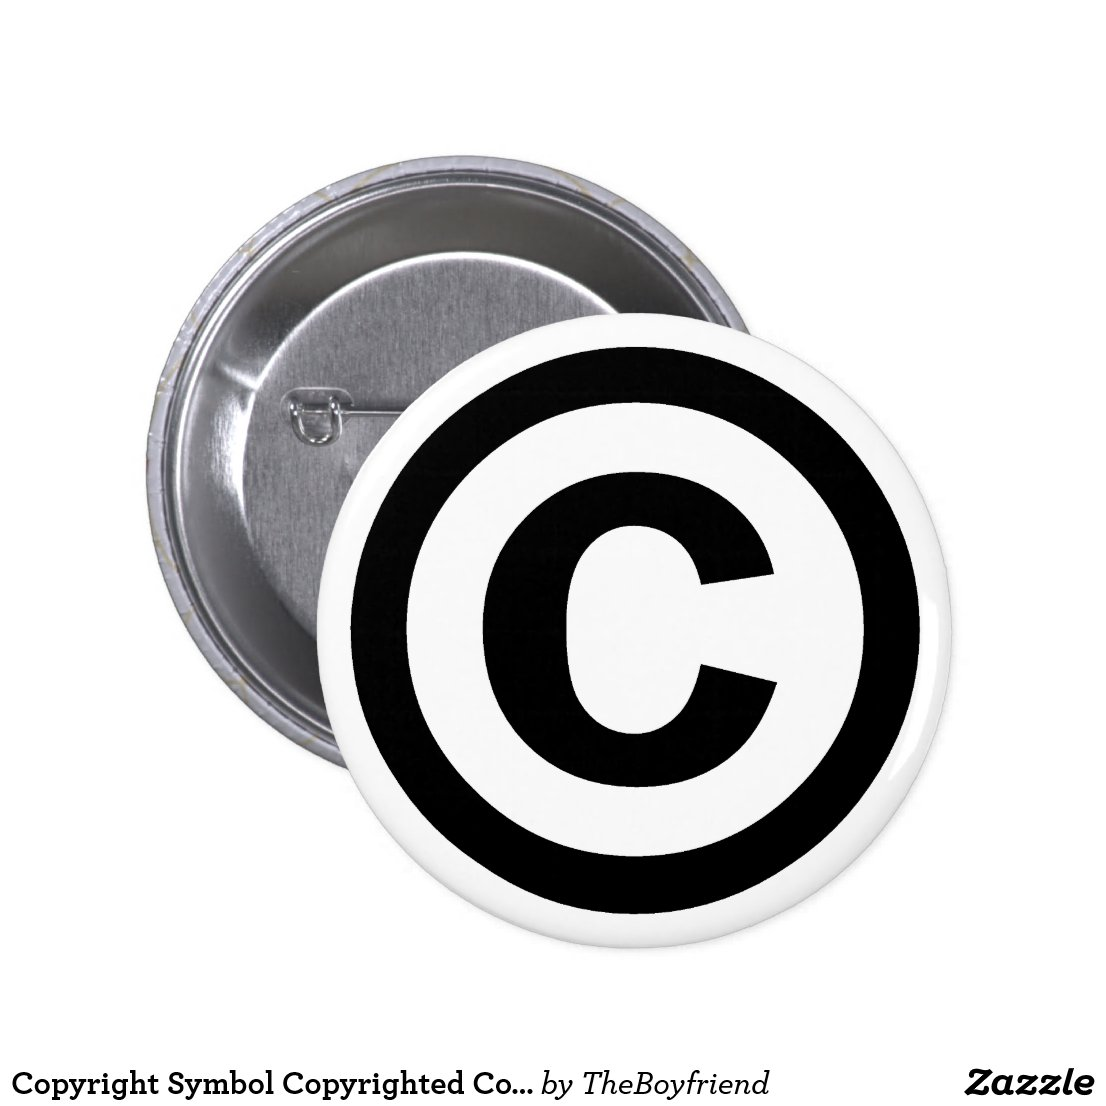 Copyrighted symbol copyright images copyright symbol copyrighted biocorpaavc